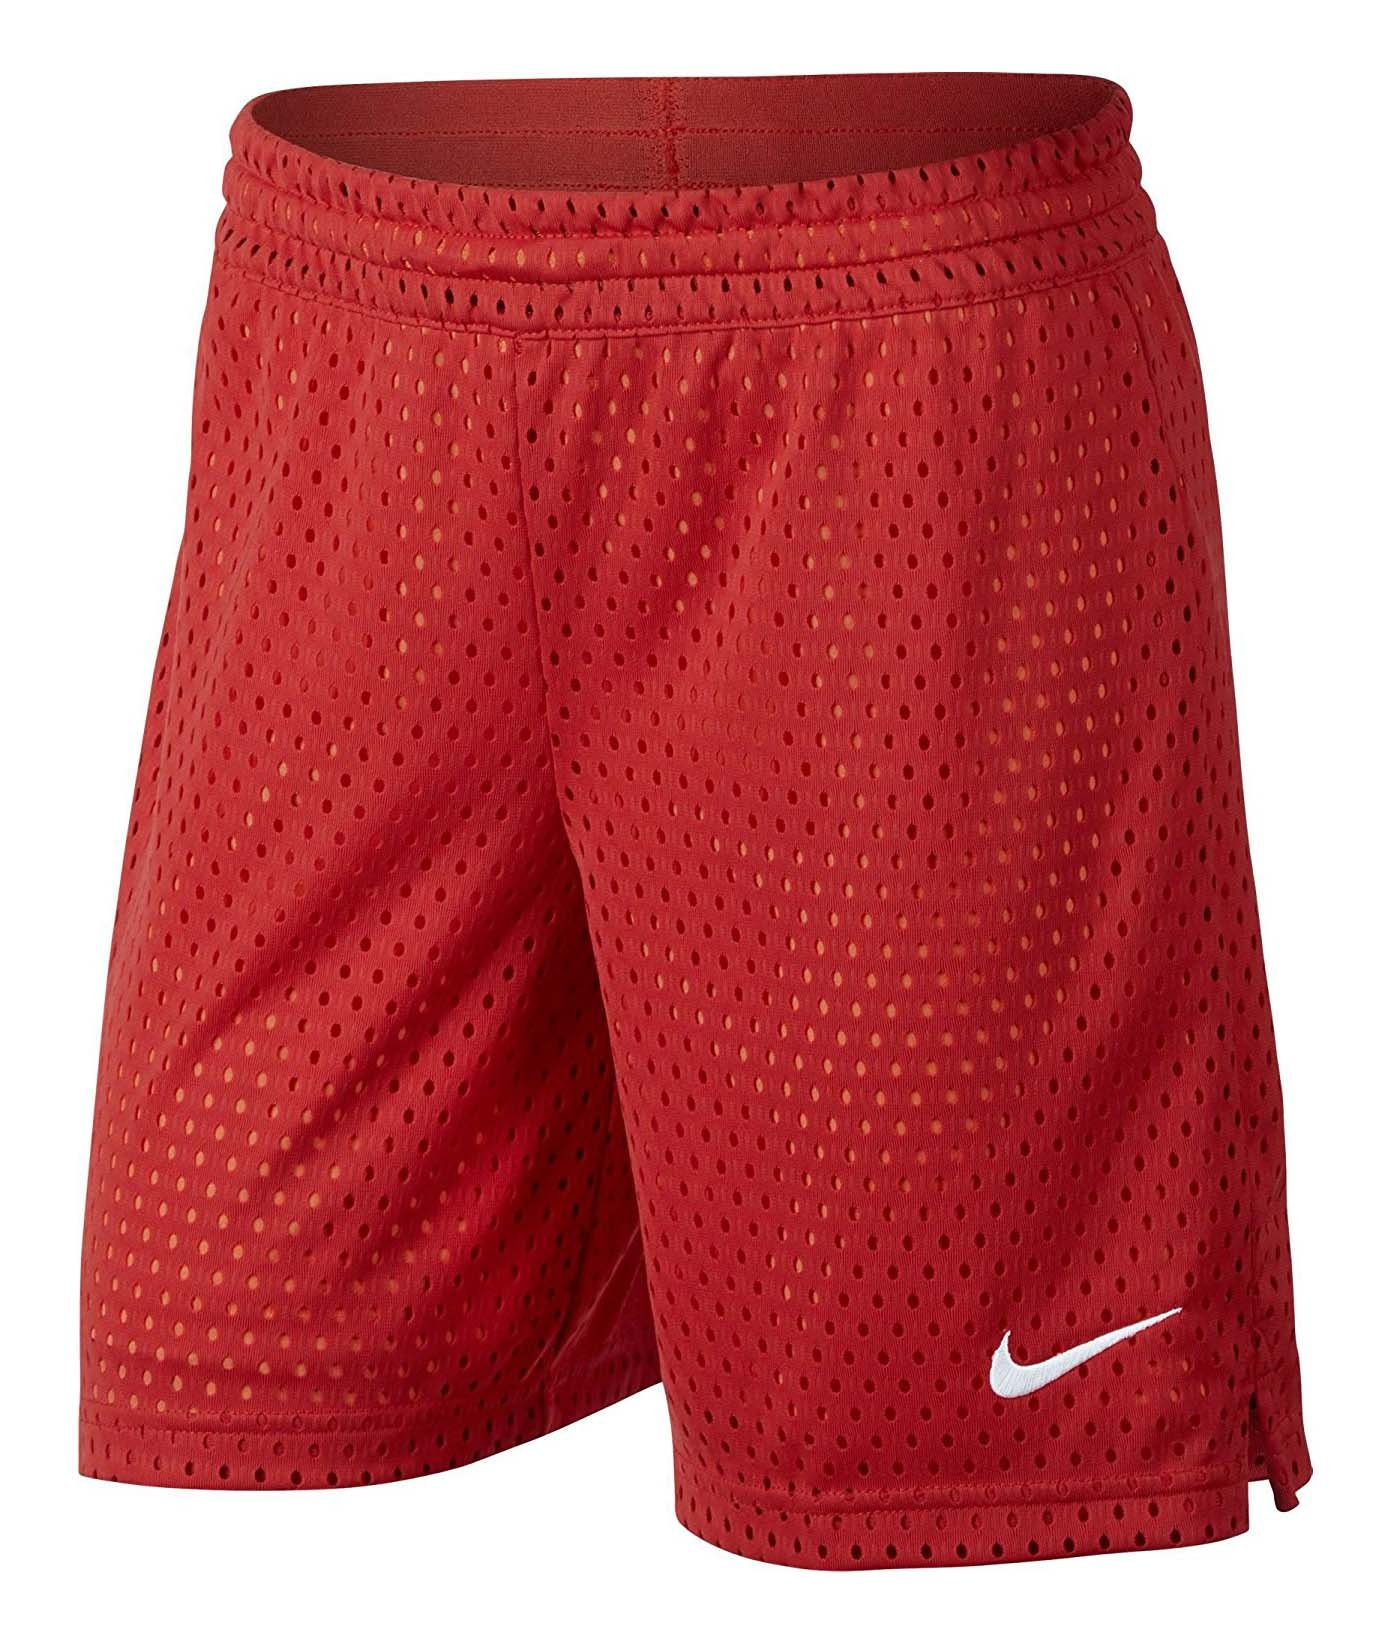 NIKE Girls' 7'' Mesh Shorts Red 830457-602 (L)